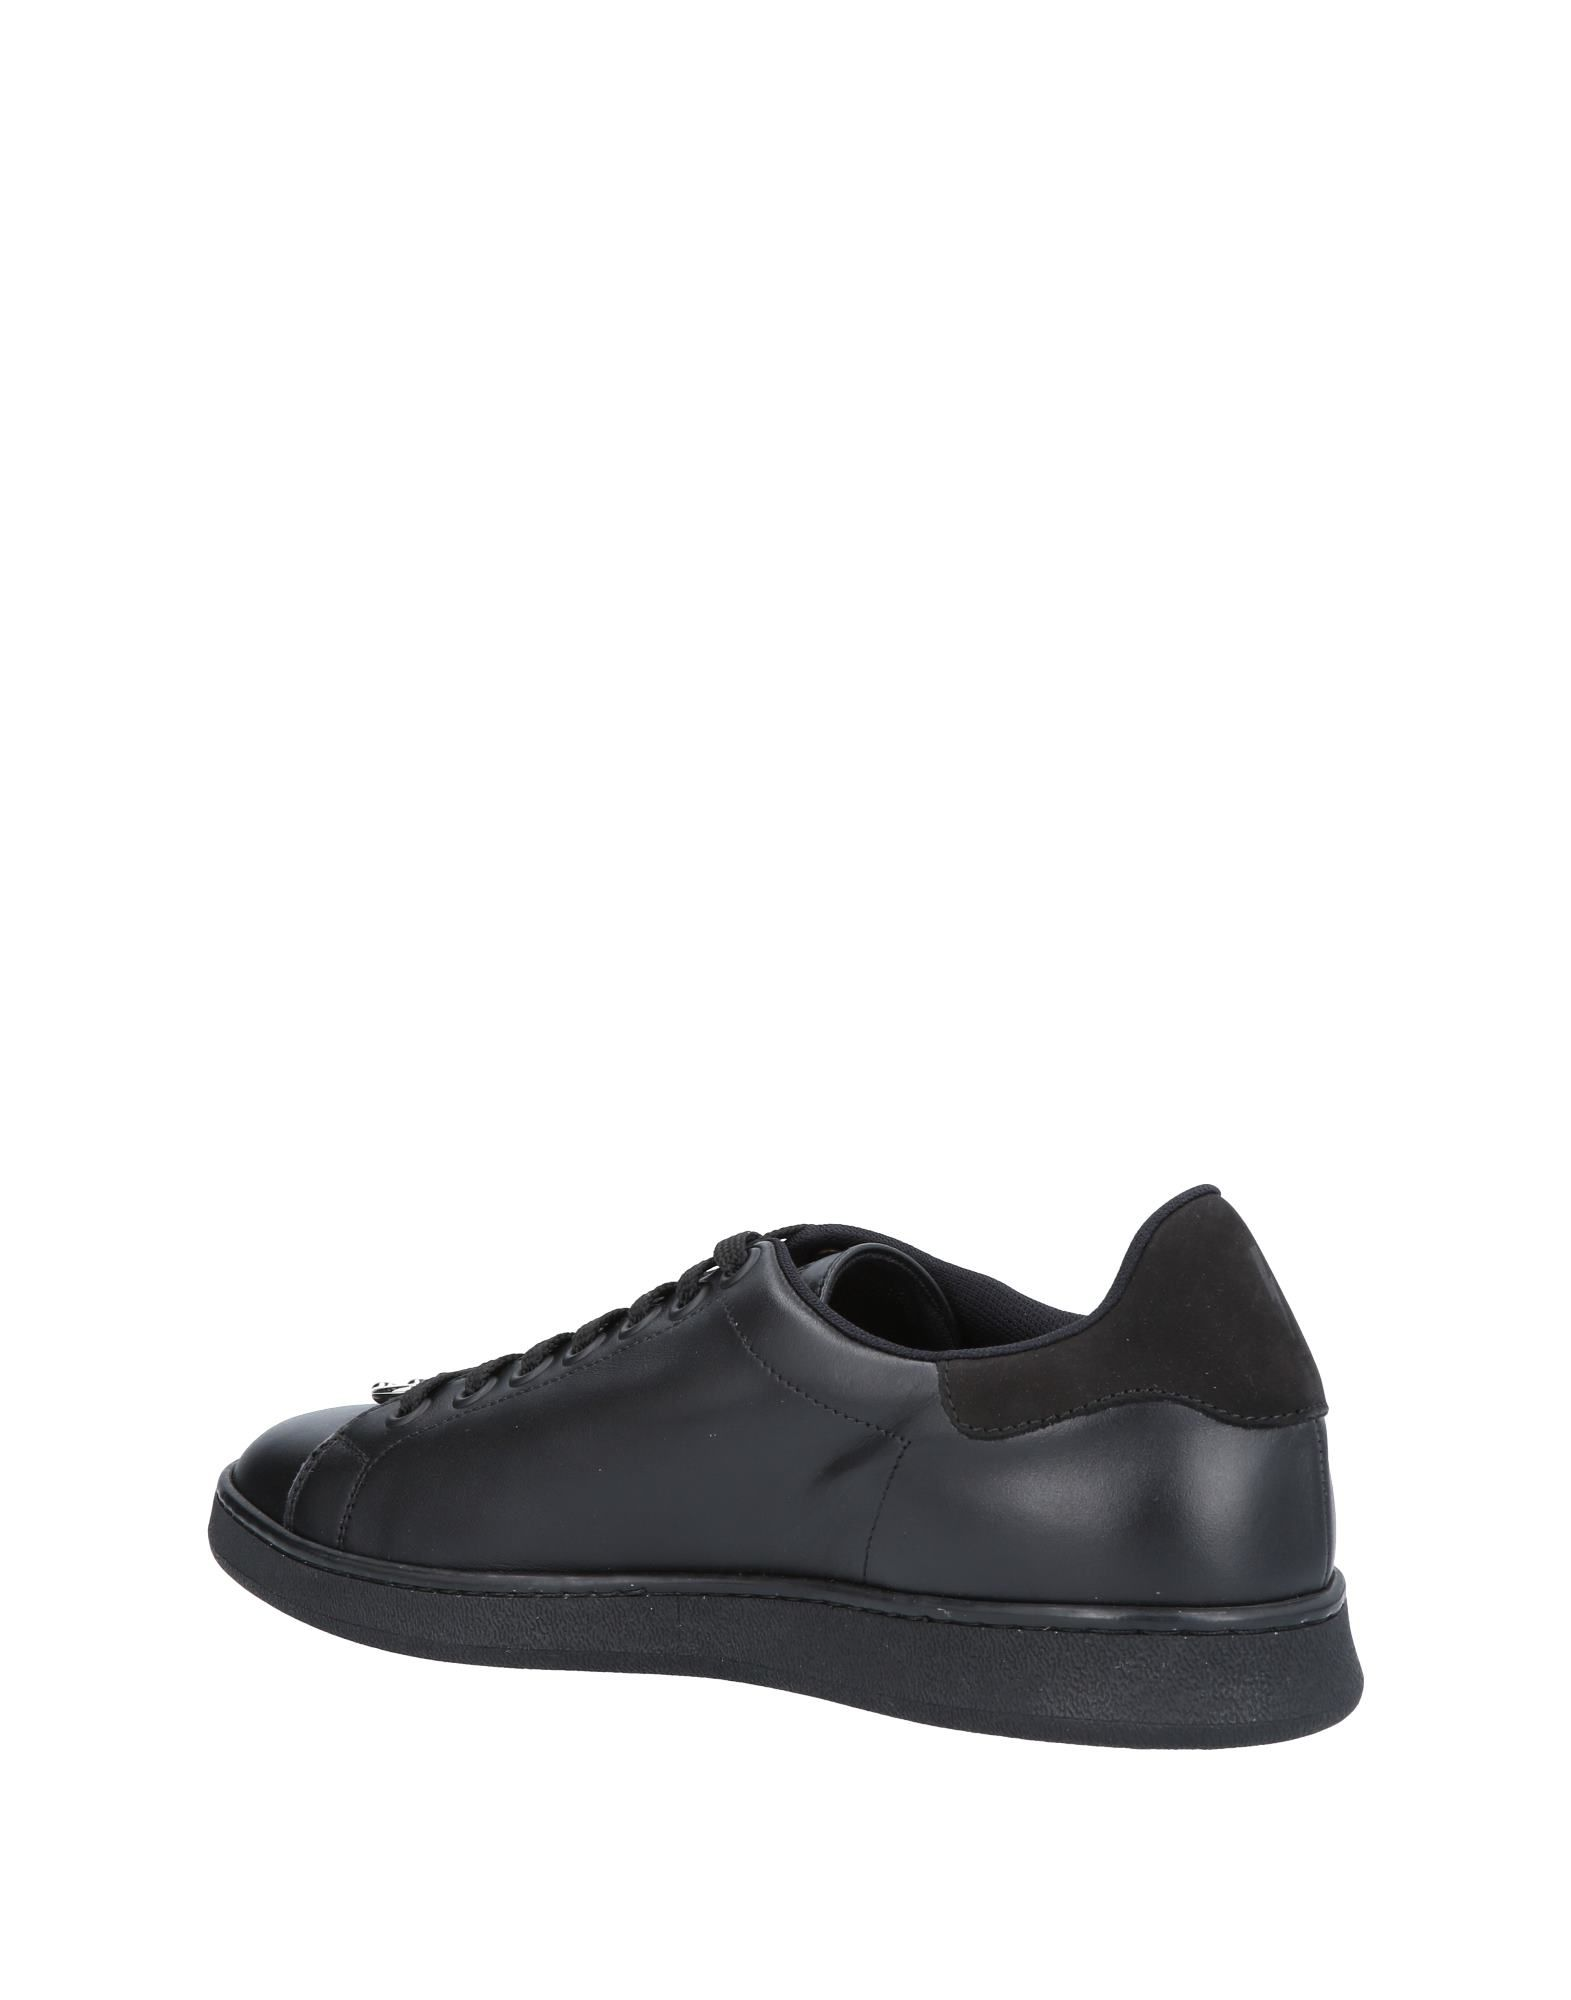 Sneakers Neil Barrett Femme - Sneakers Neil Barrett sur